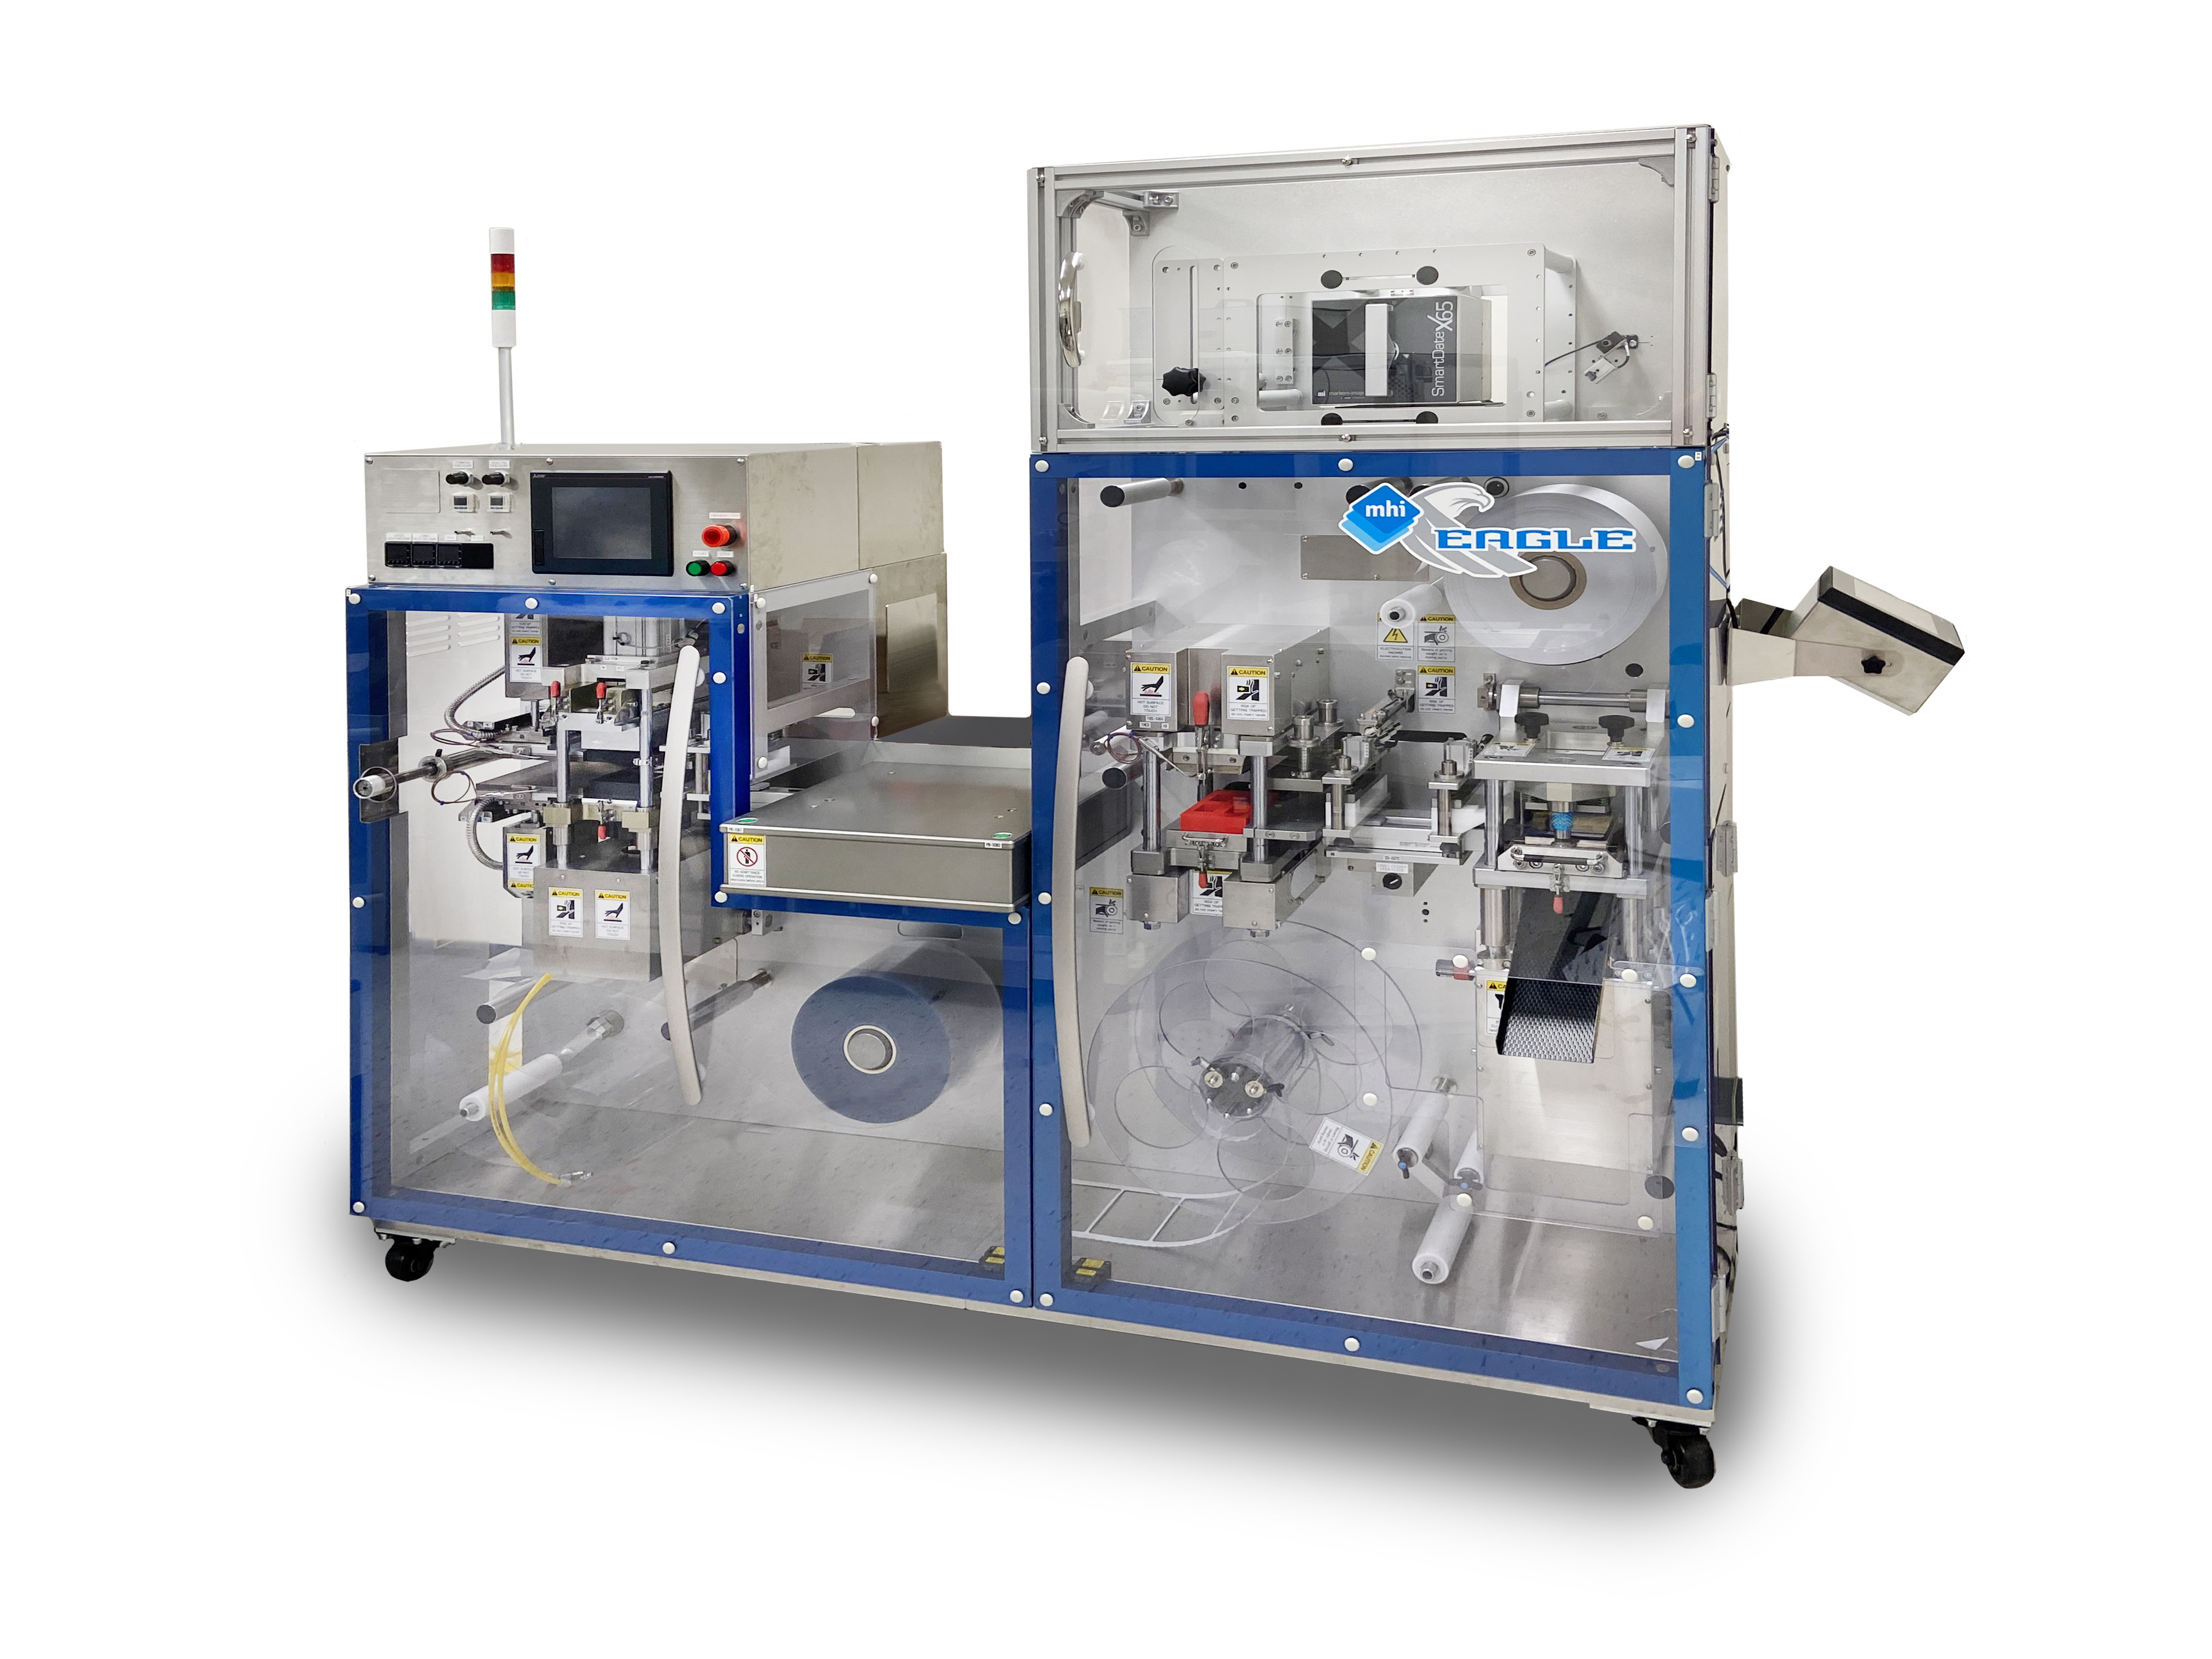 At Pack Expo 2021, MHI To Showcase EAGLE-Omni  Deep-Draw Blister Packaging Machine With Enhanced Printer Module